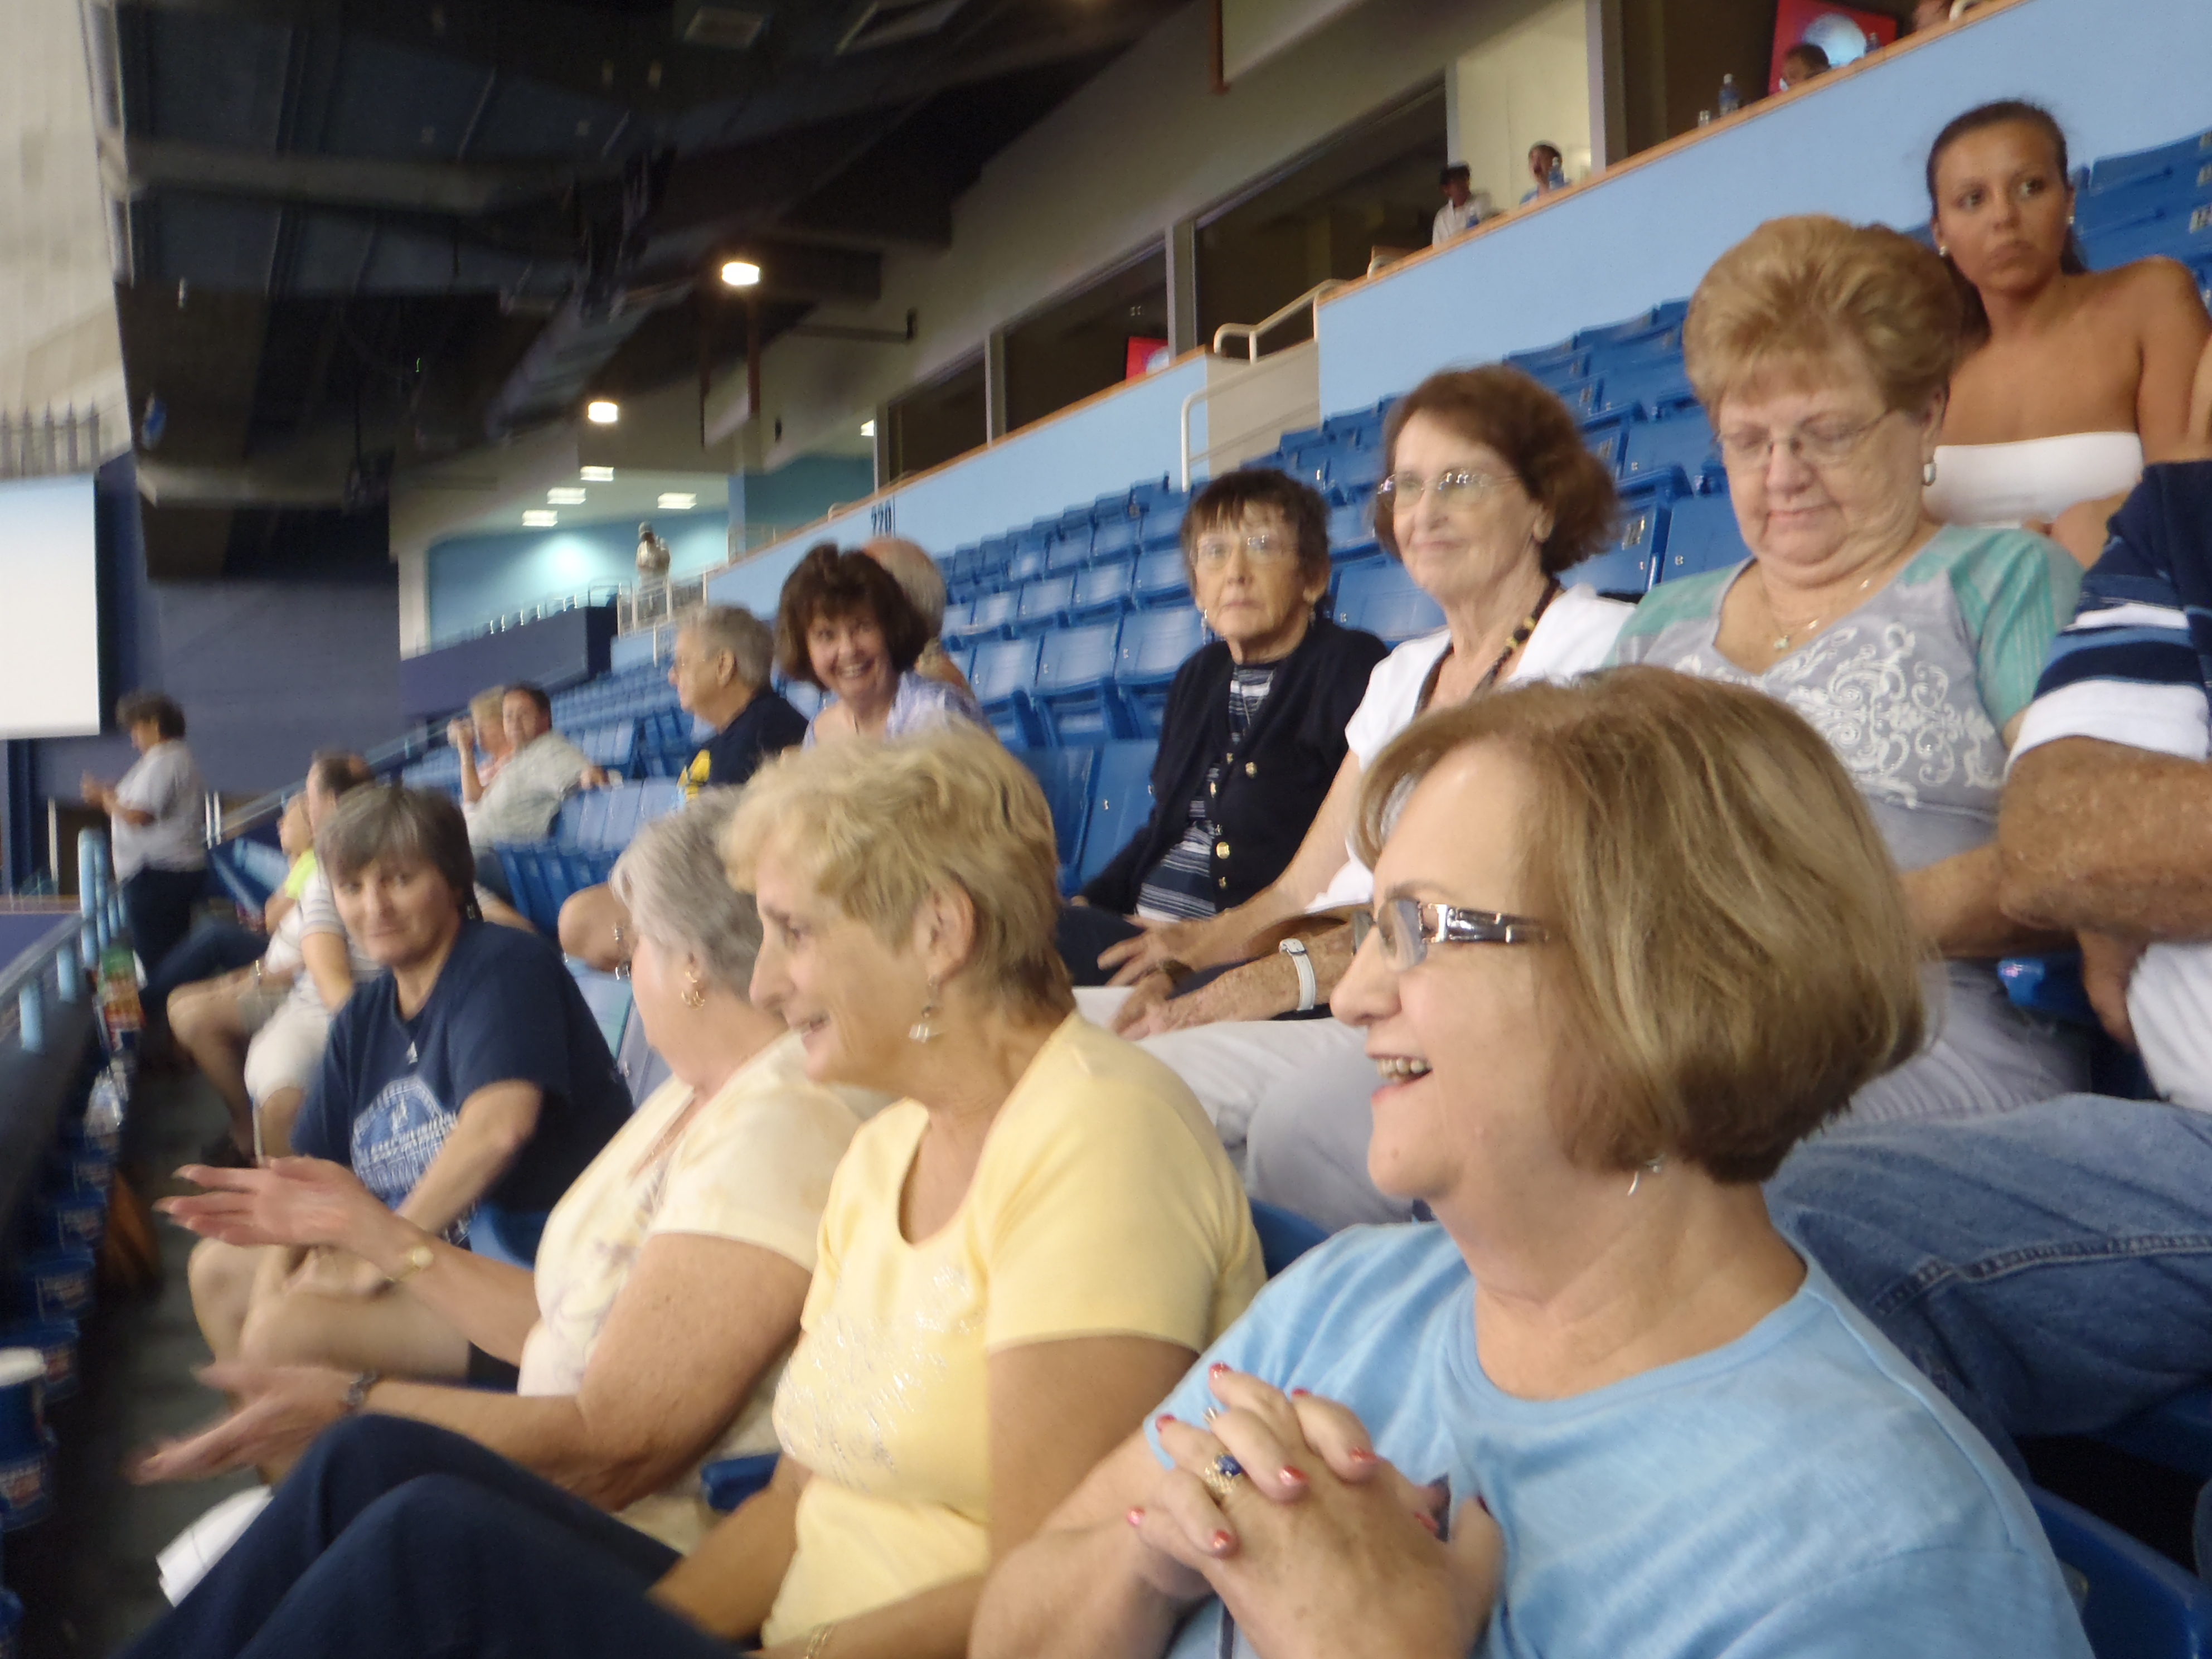 The Adventurous Woman at the Rays game